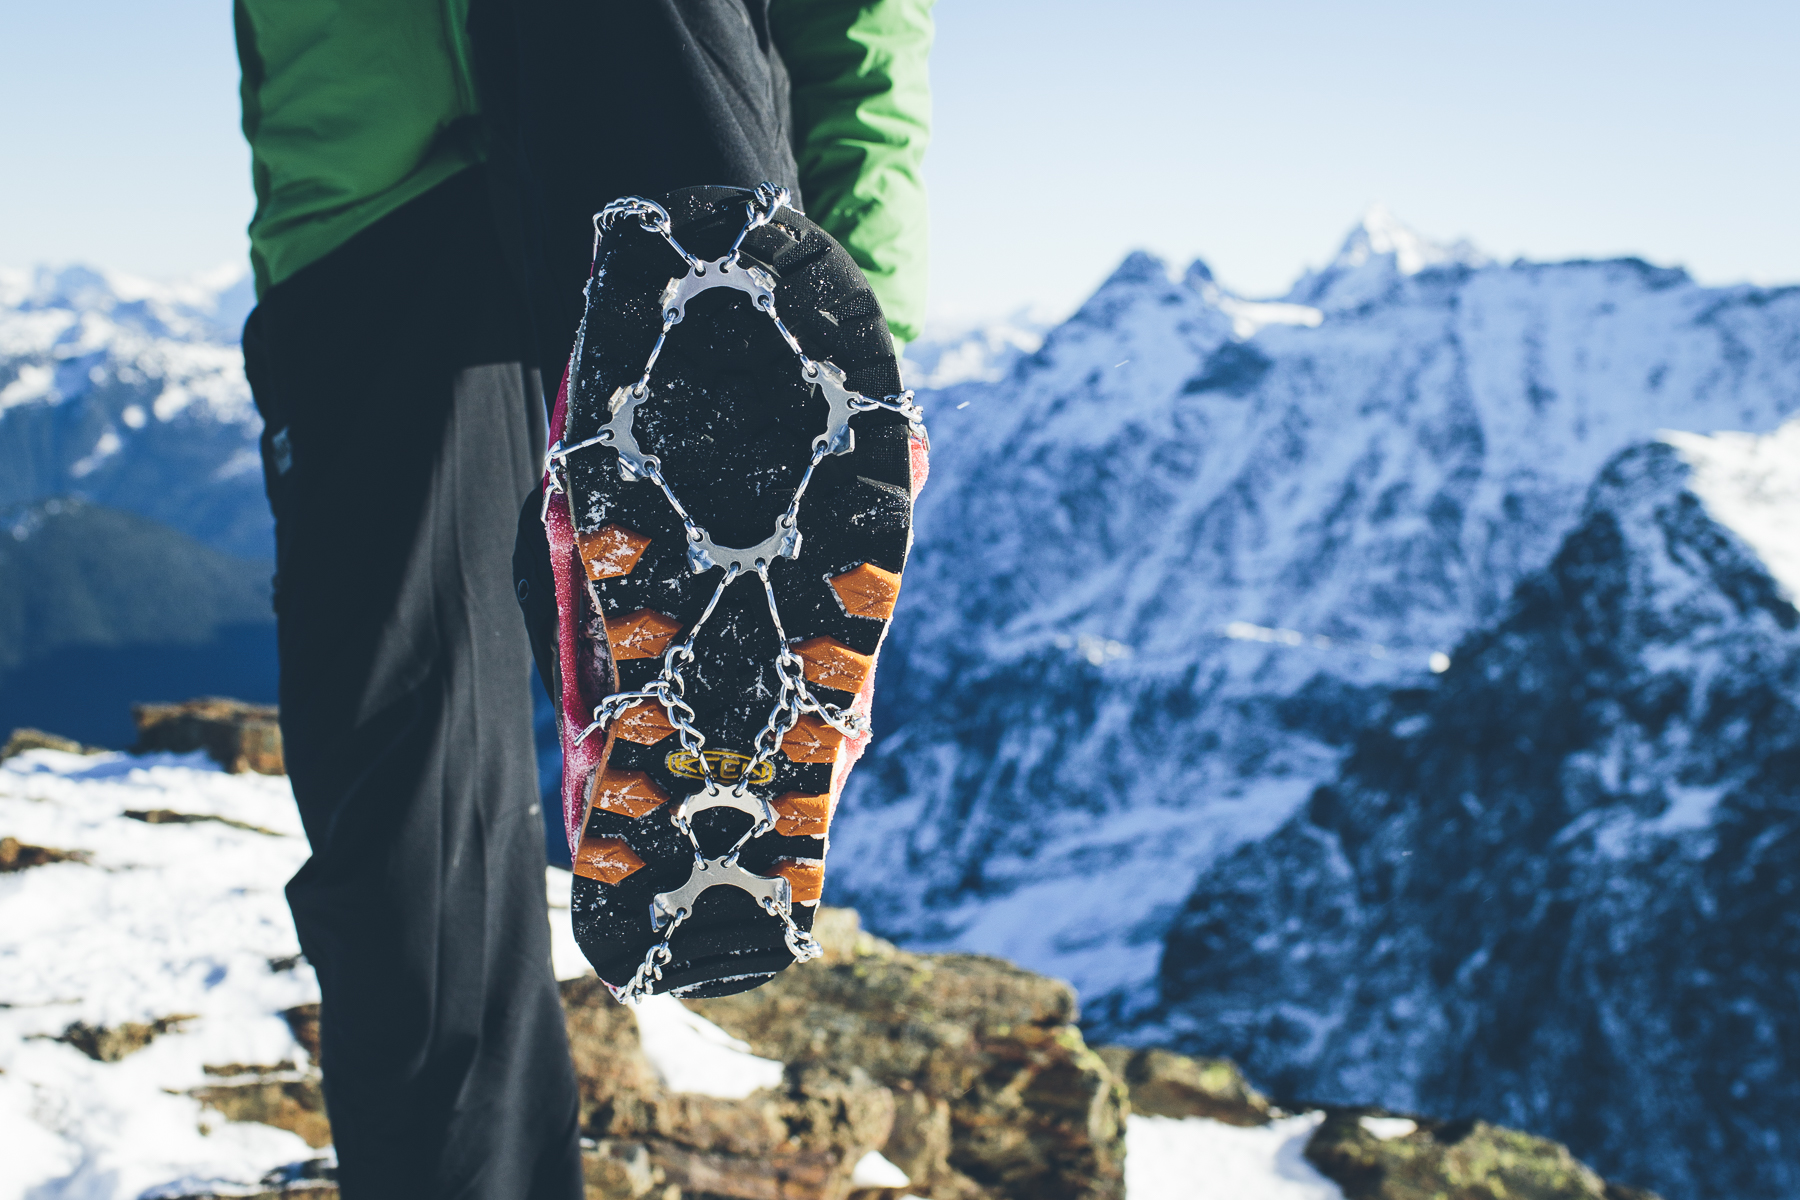 man wearing Kahtoola microspikes on a hiking boot in the mountains with snow south america gearlist